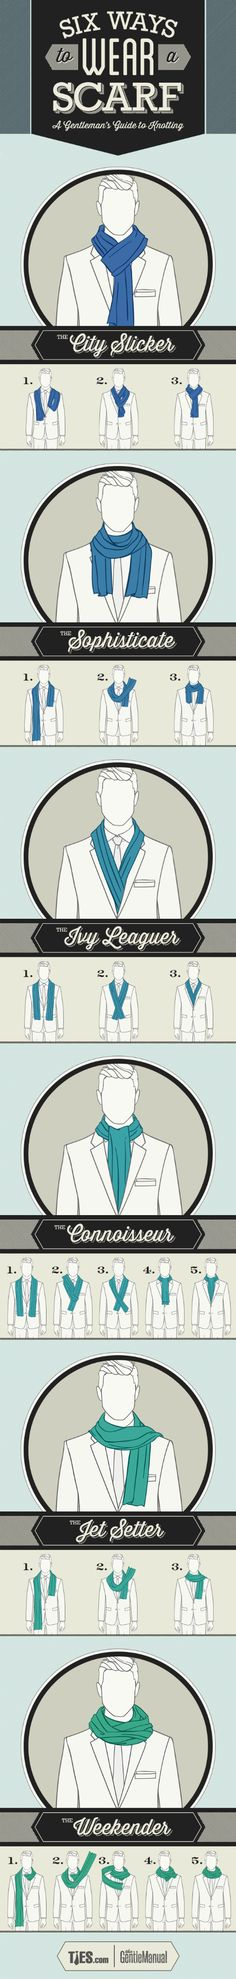 The Ultimate Gentleman Cheat Sheet Every Man Needs: how to wear a scarf and totally nail it. | Raddest Men's Fashion Looks On The Internet: http://www.raddestlooks.org